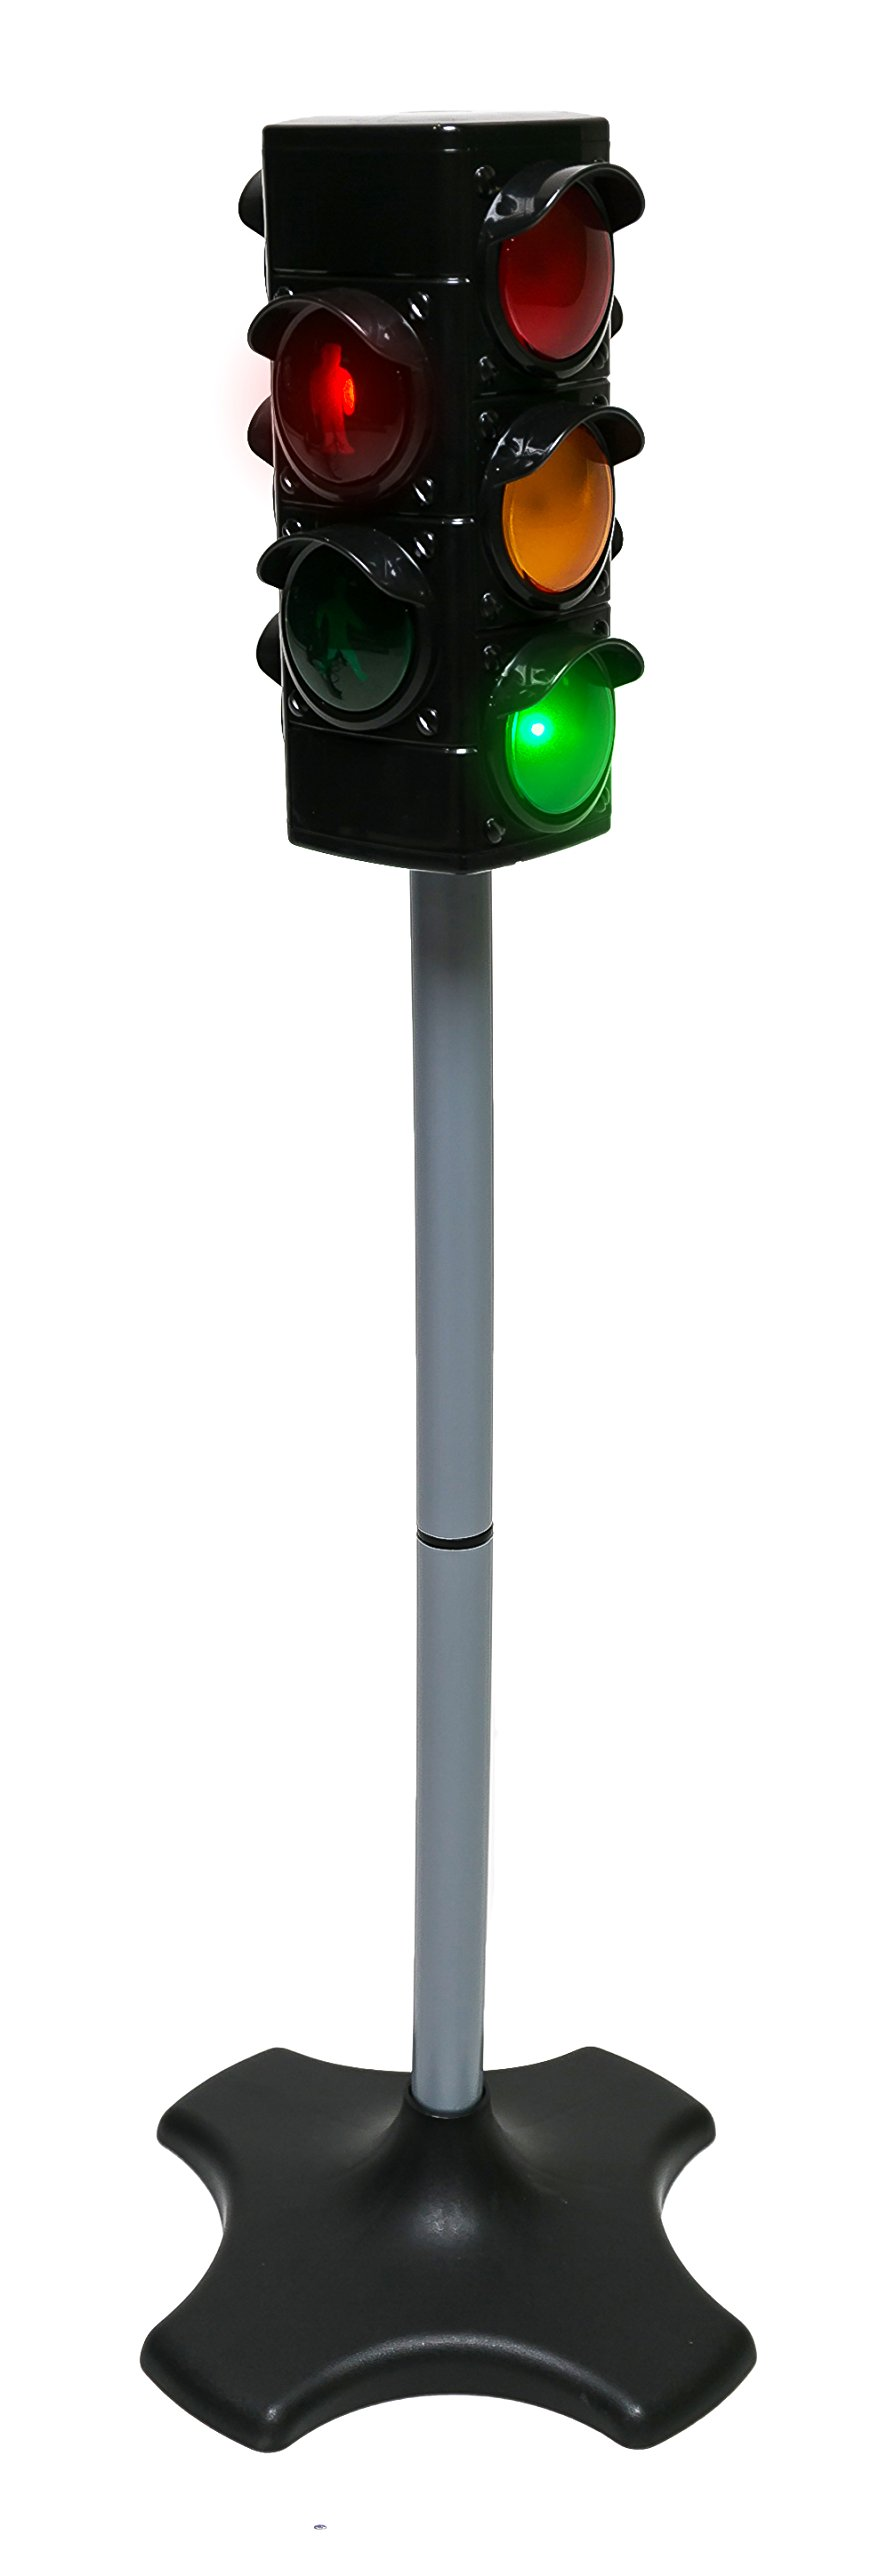 MMP Living Toy Traffic & Crosswalk Signal with Light & Sound - 4 Sided, Over 2 feet Tall by MMP Living (Image #1)